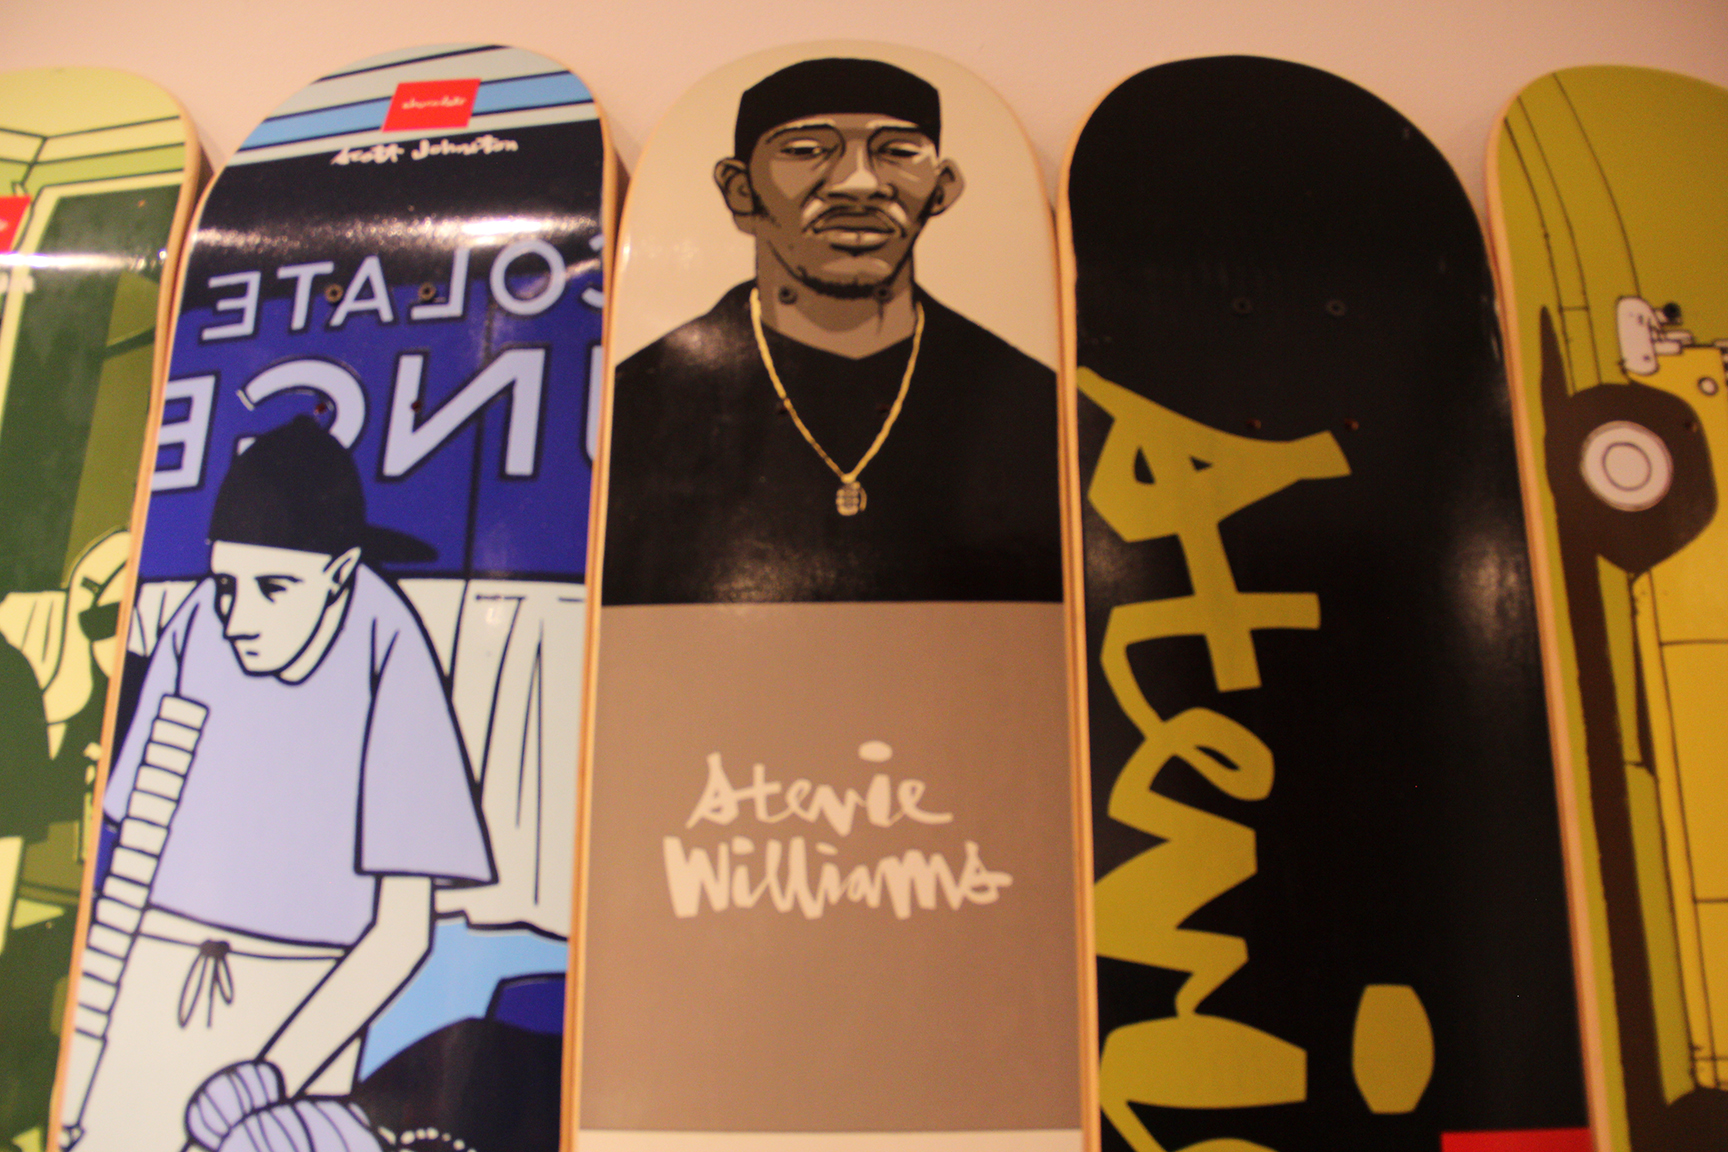 Stevie Williams deck